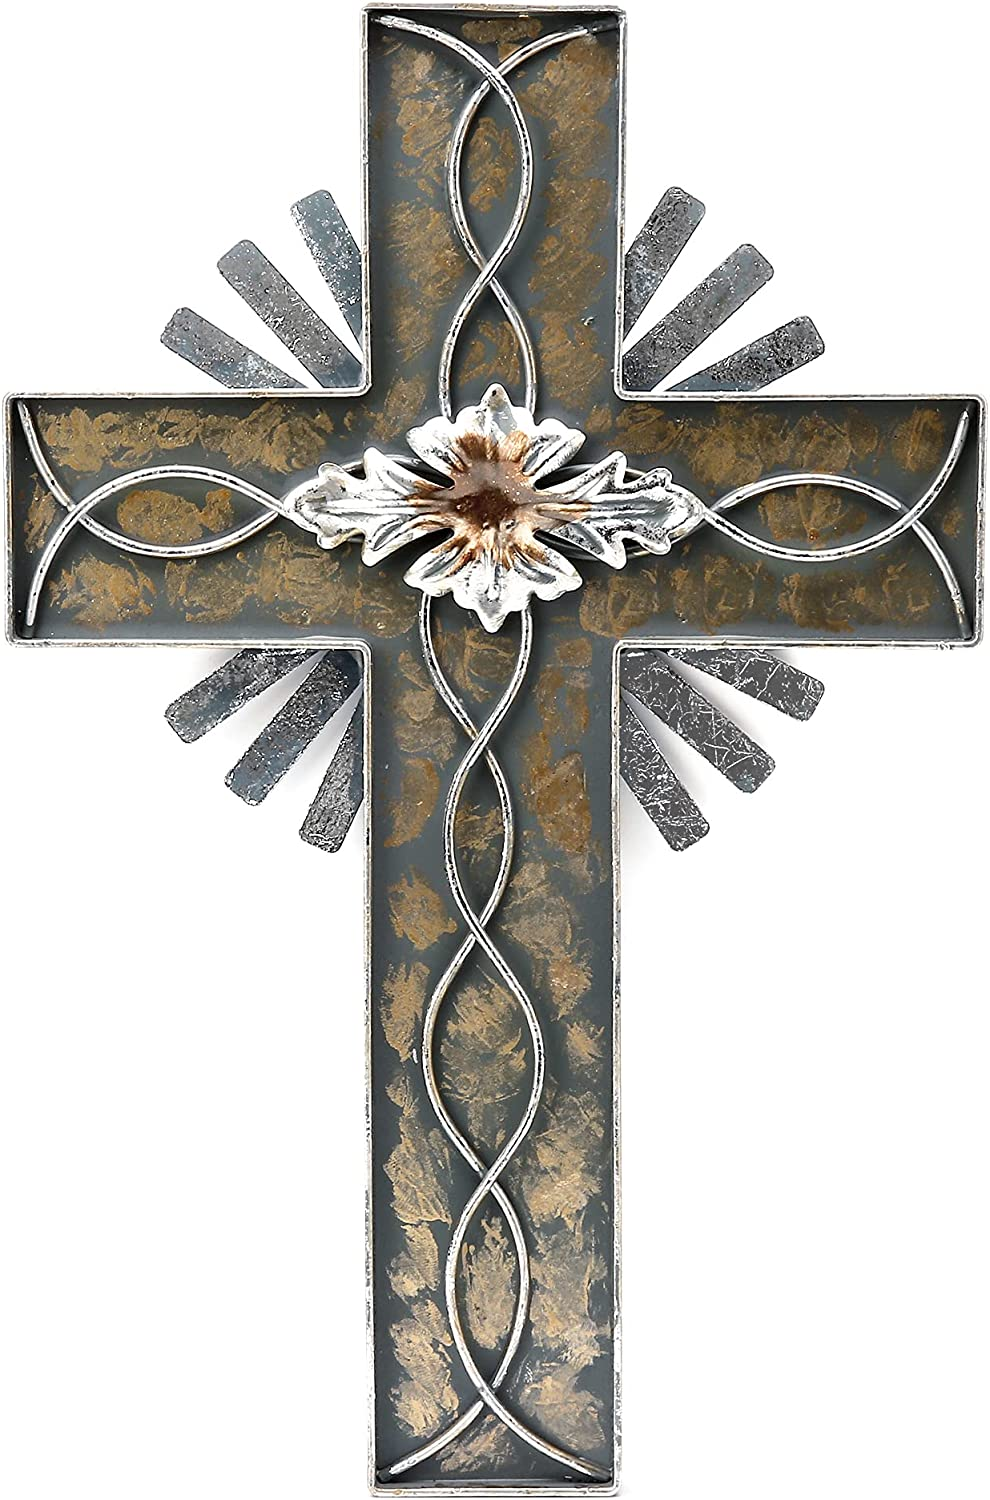 Holy Light Cross - Religious Metal Hangings - Silver Foil and Leaves Home Decor, Cross Wall Decor for Living Room, Bedroom and Dining Room (Champagne)